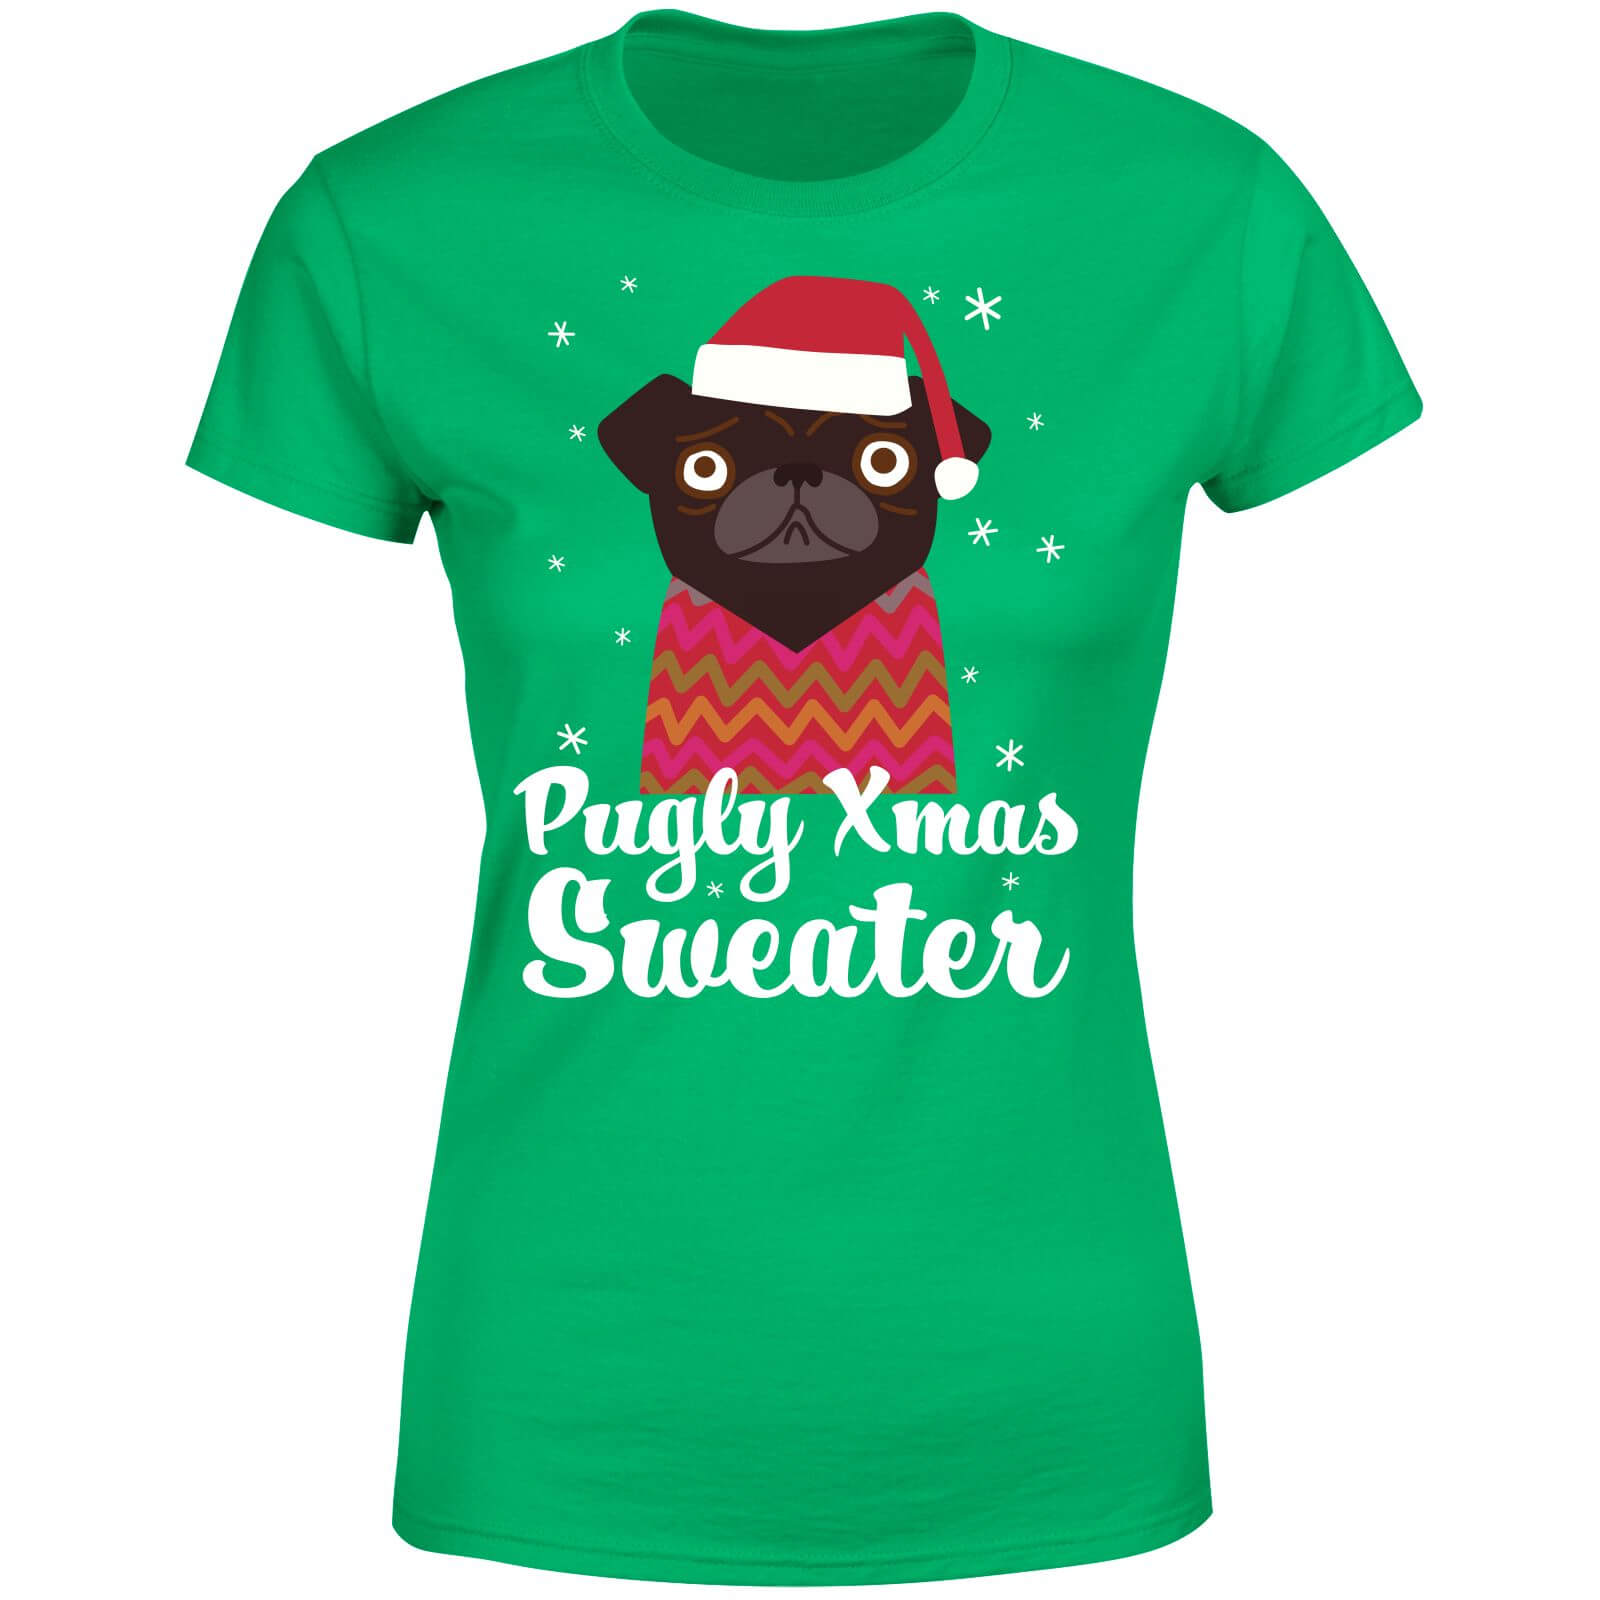 Pugly xmas Sweater Women